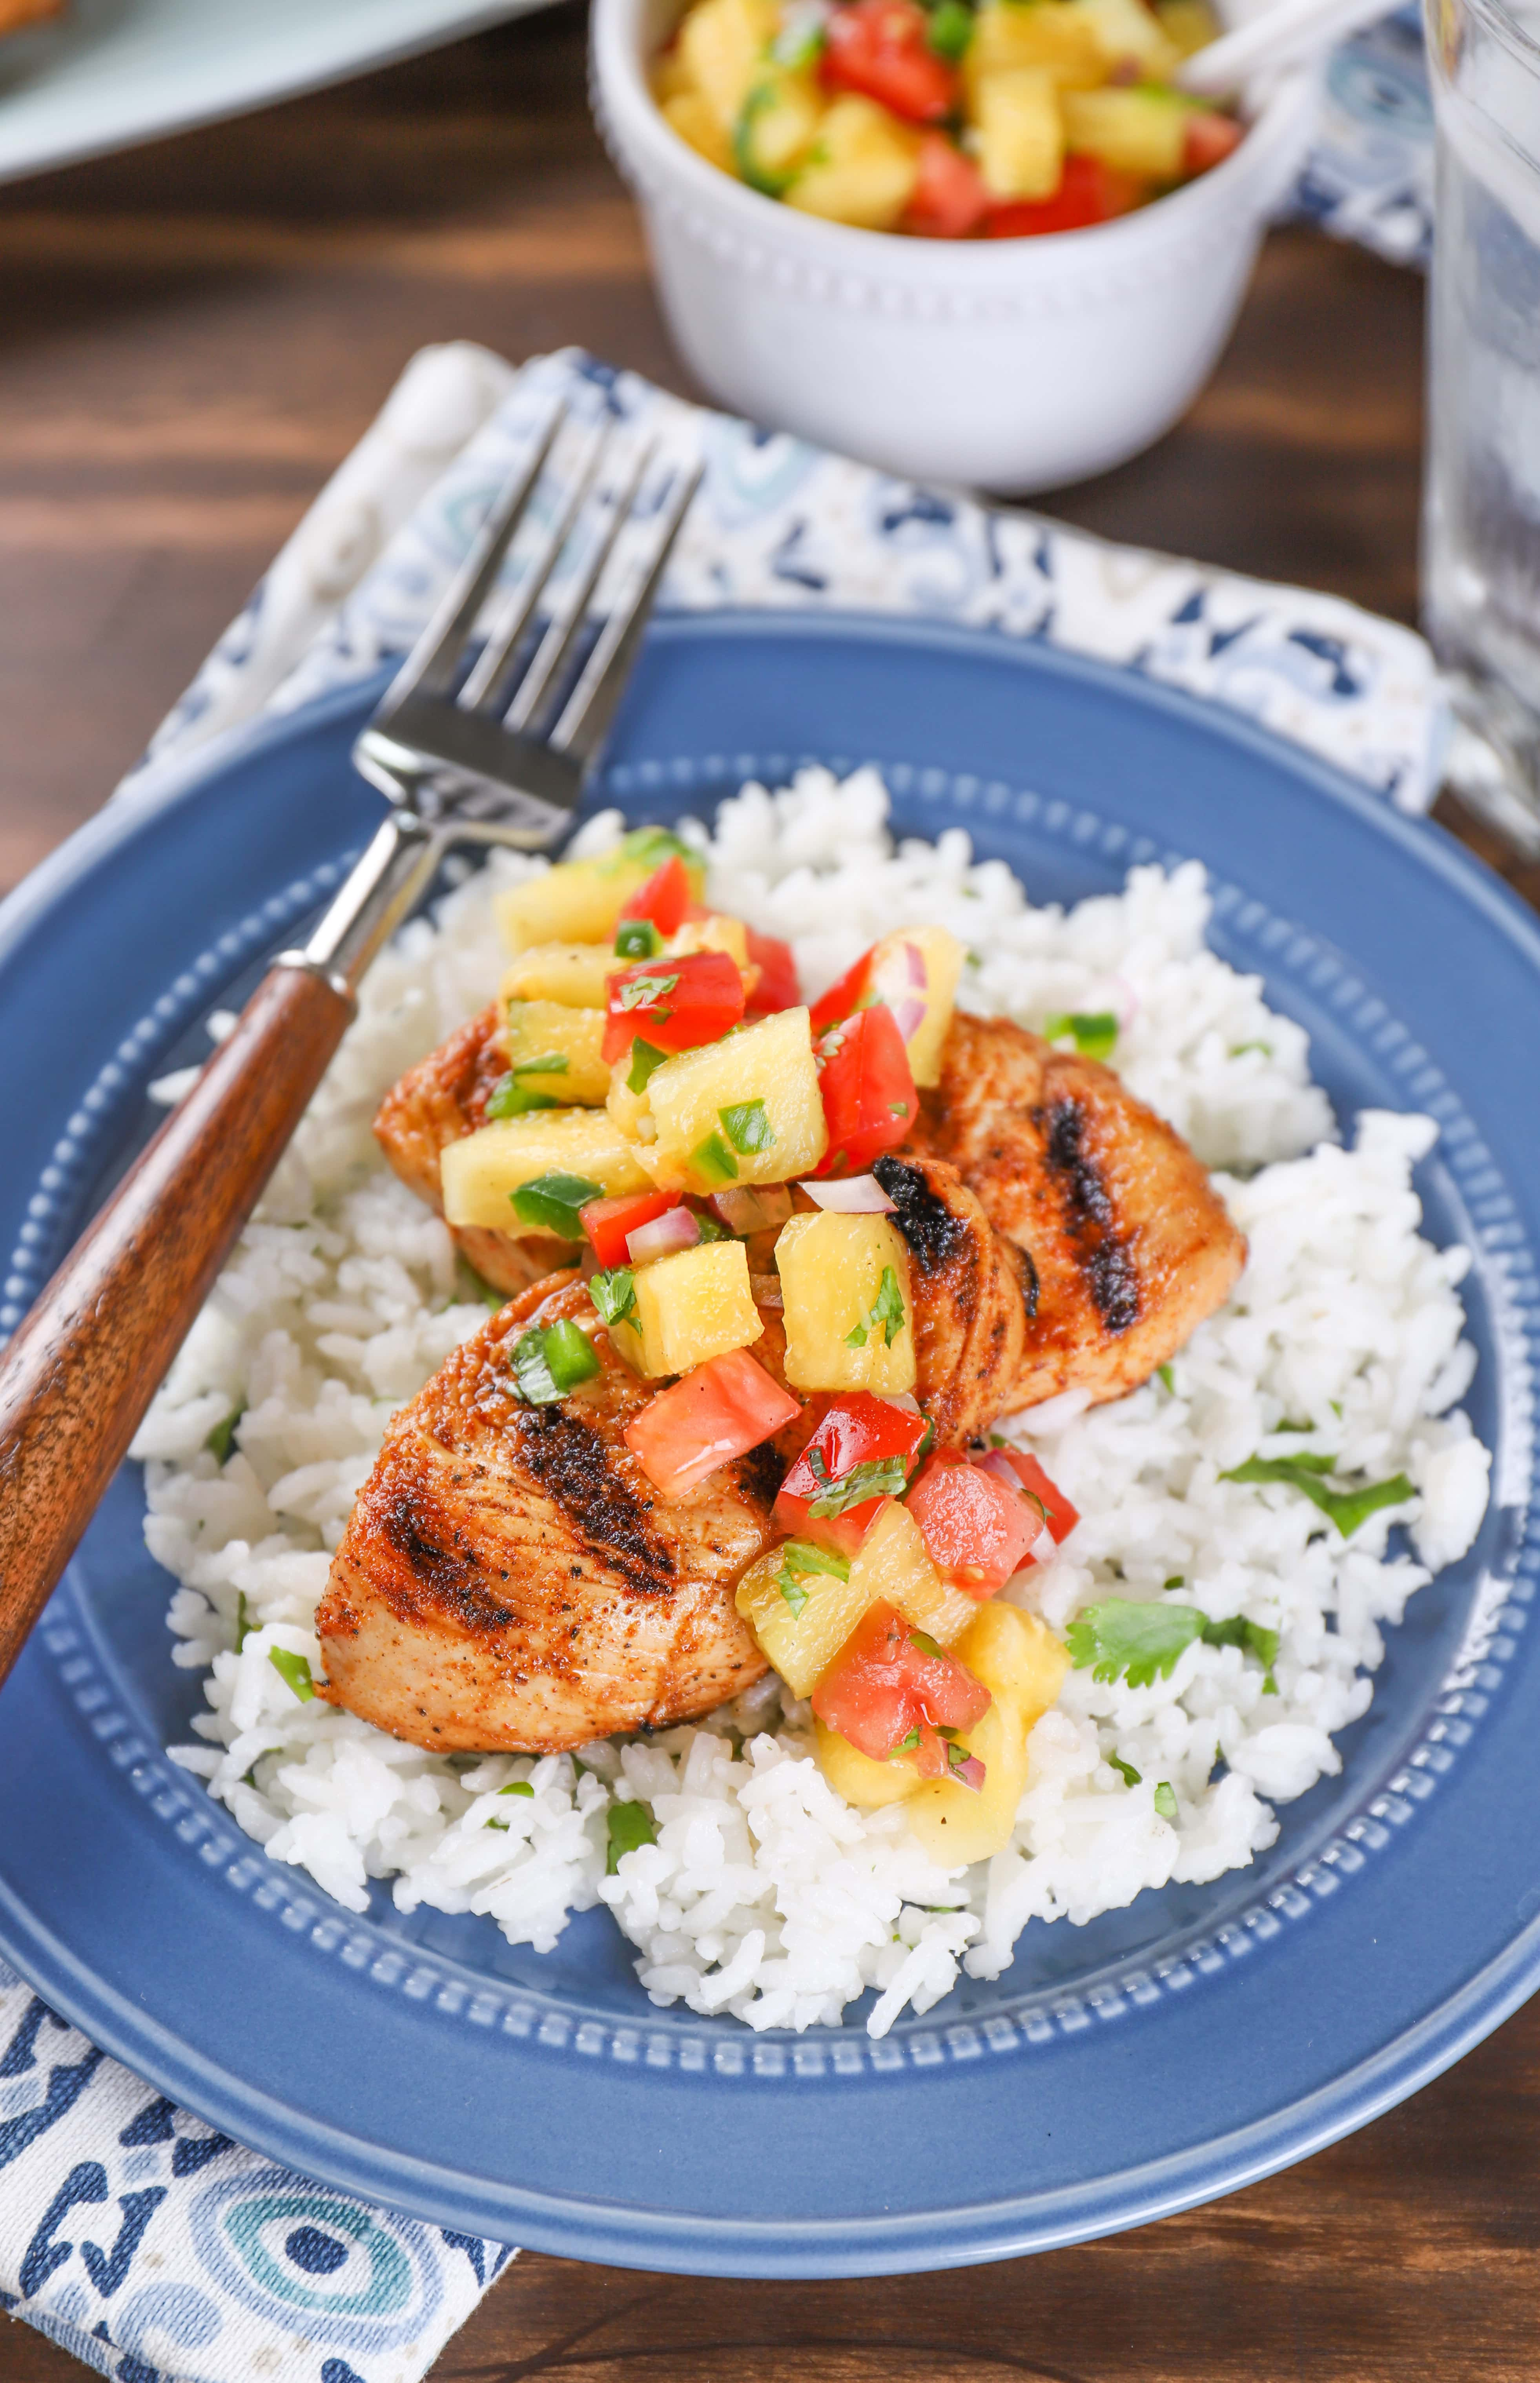 Grilled Chili Lime Turkey Tenders with Pineapple Salsa Recipe